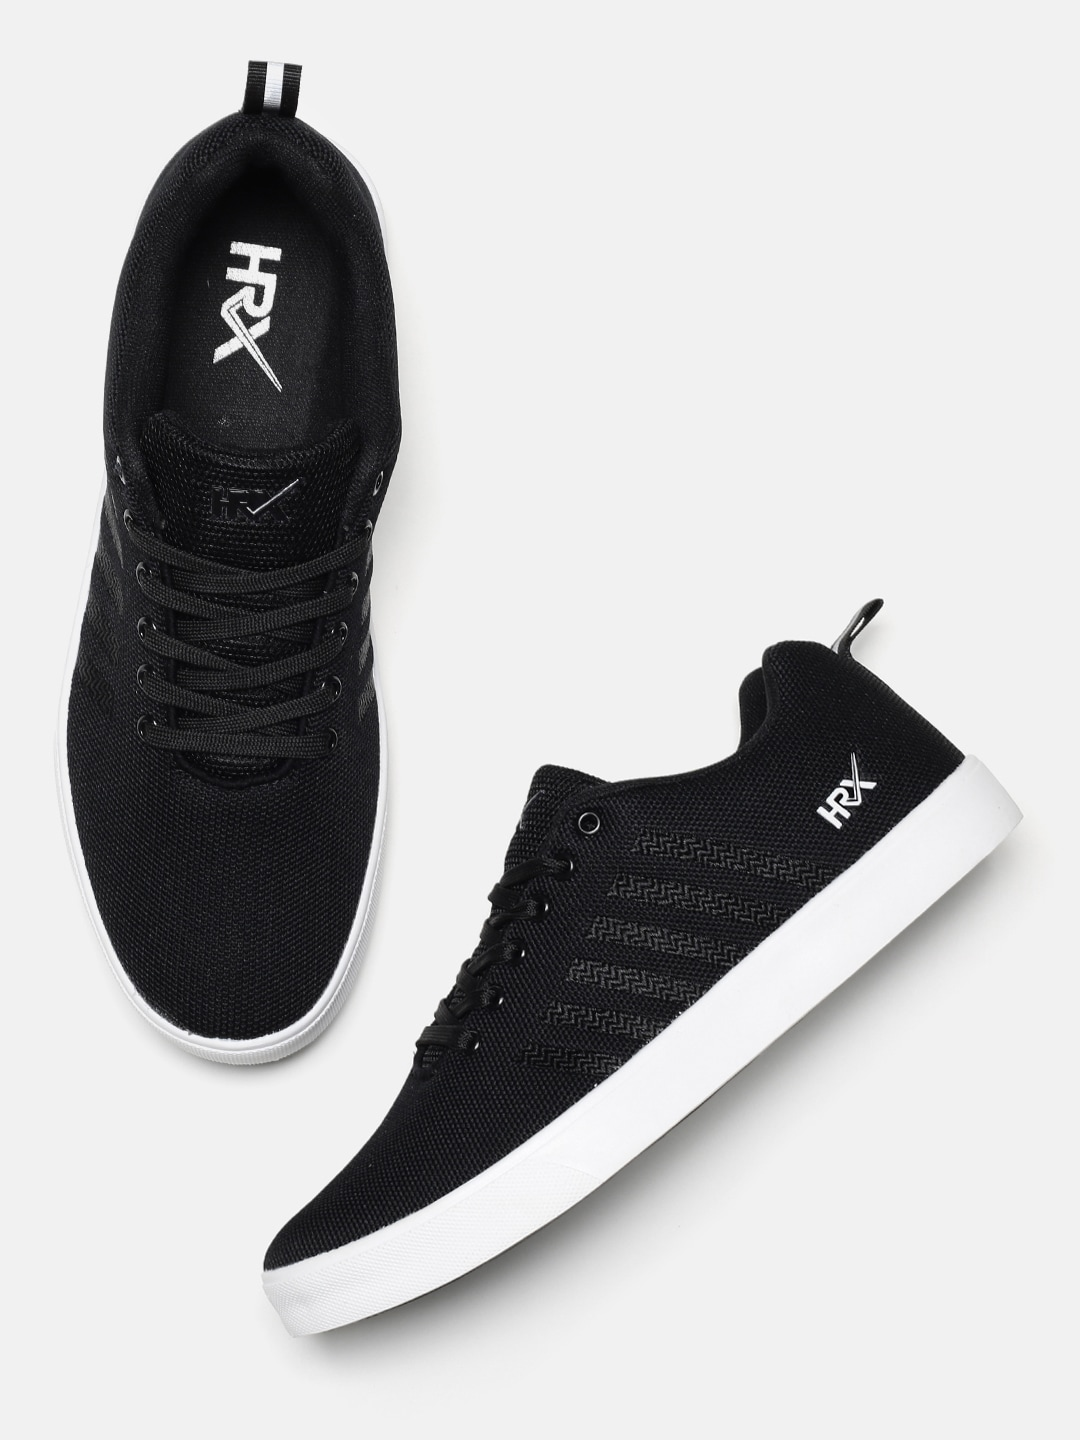 Sneakers Online - Buy Sneakers for Men   Women - Myntra f0fa05795